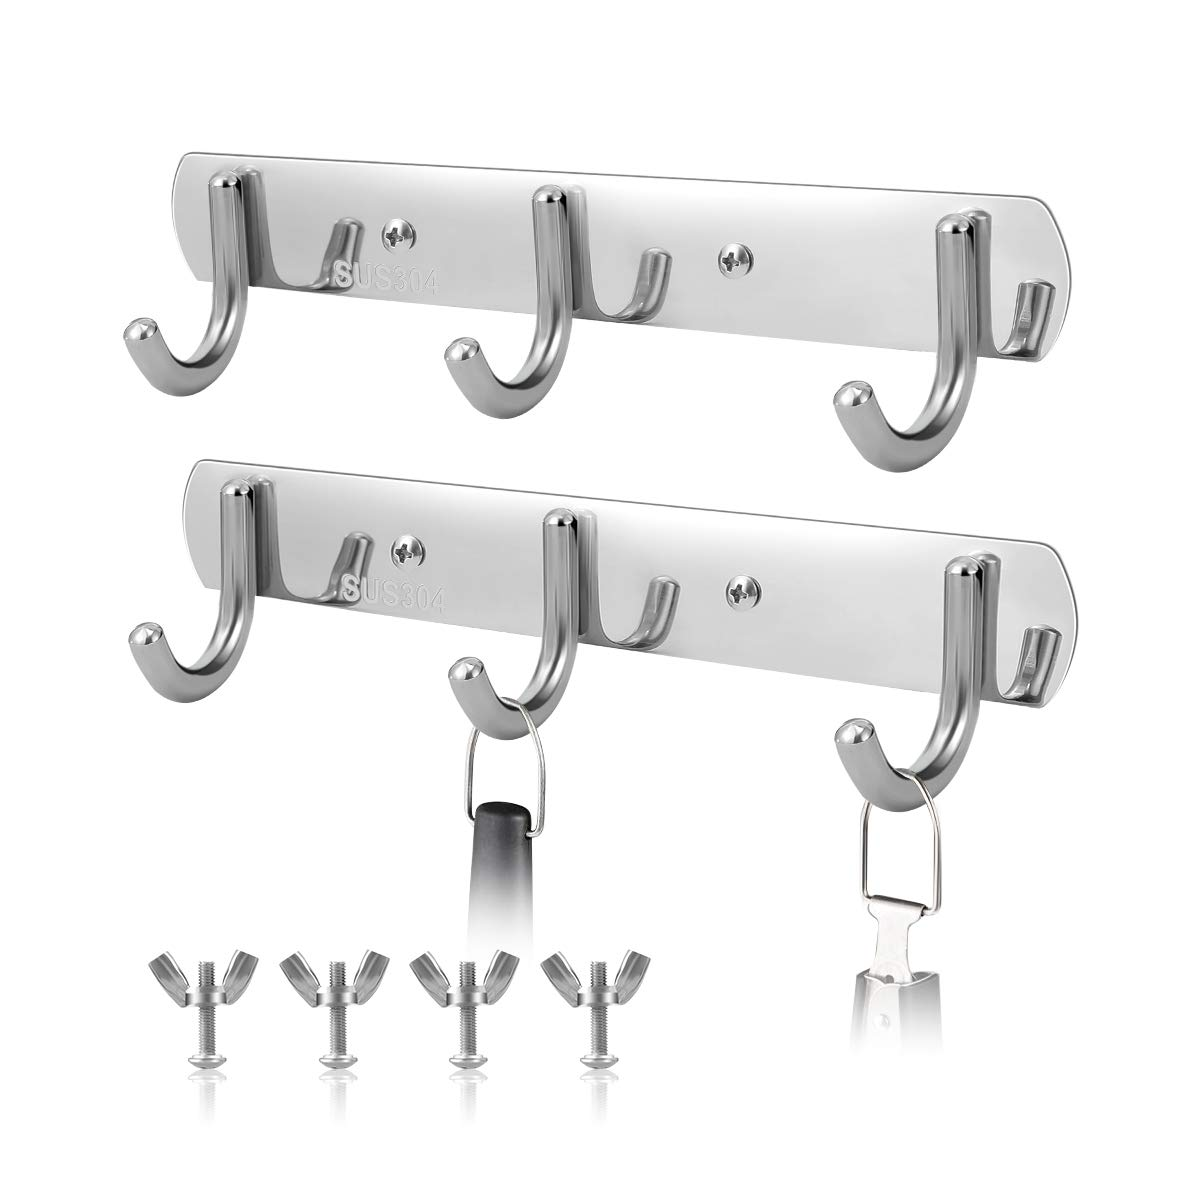 AIEVE Grill Hooks for Utensils,Heavy Duty Hanger Gear Trax Combo Kit for Char-Broil Grill Hanging Grilling and Cooking Utensils Barbecue Tools